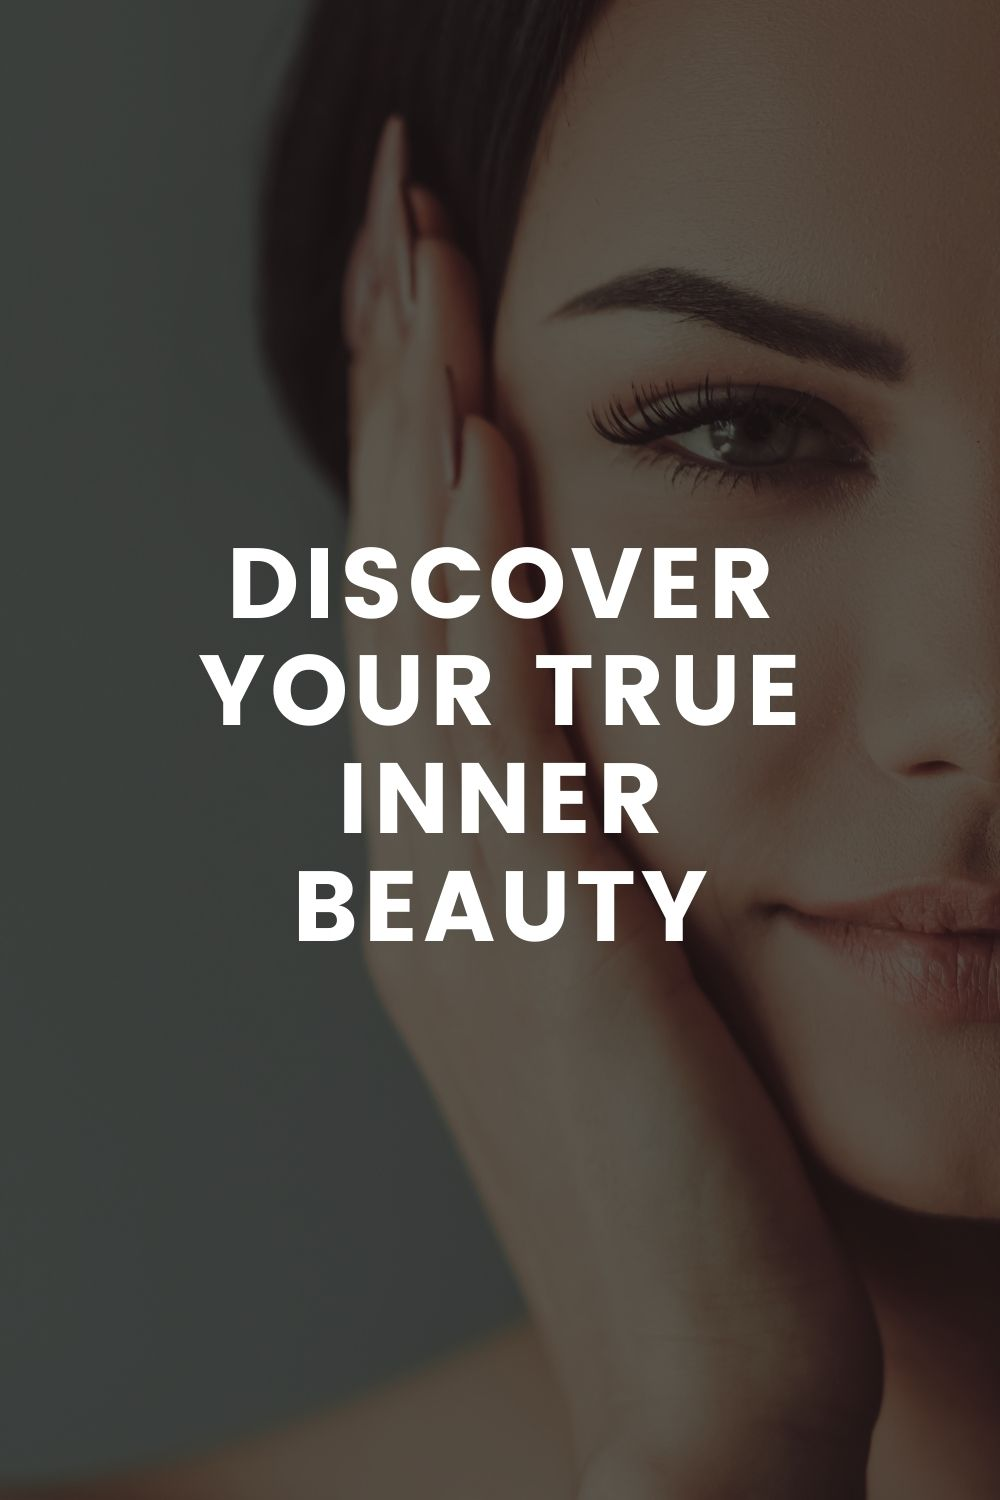 Discover Your True Inner Beauty